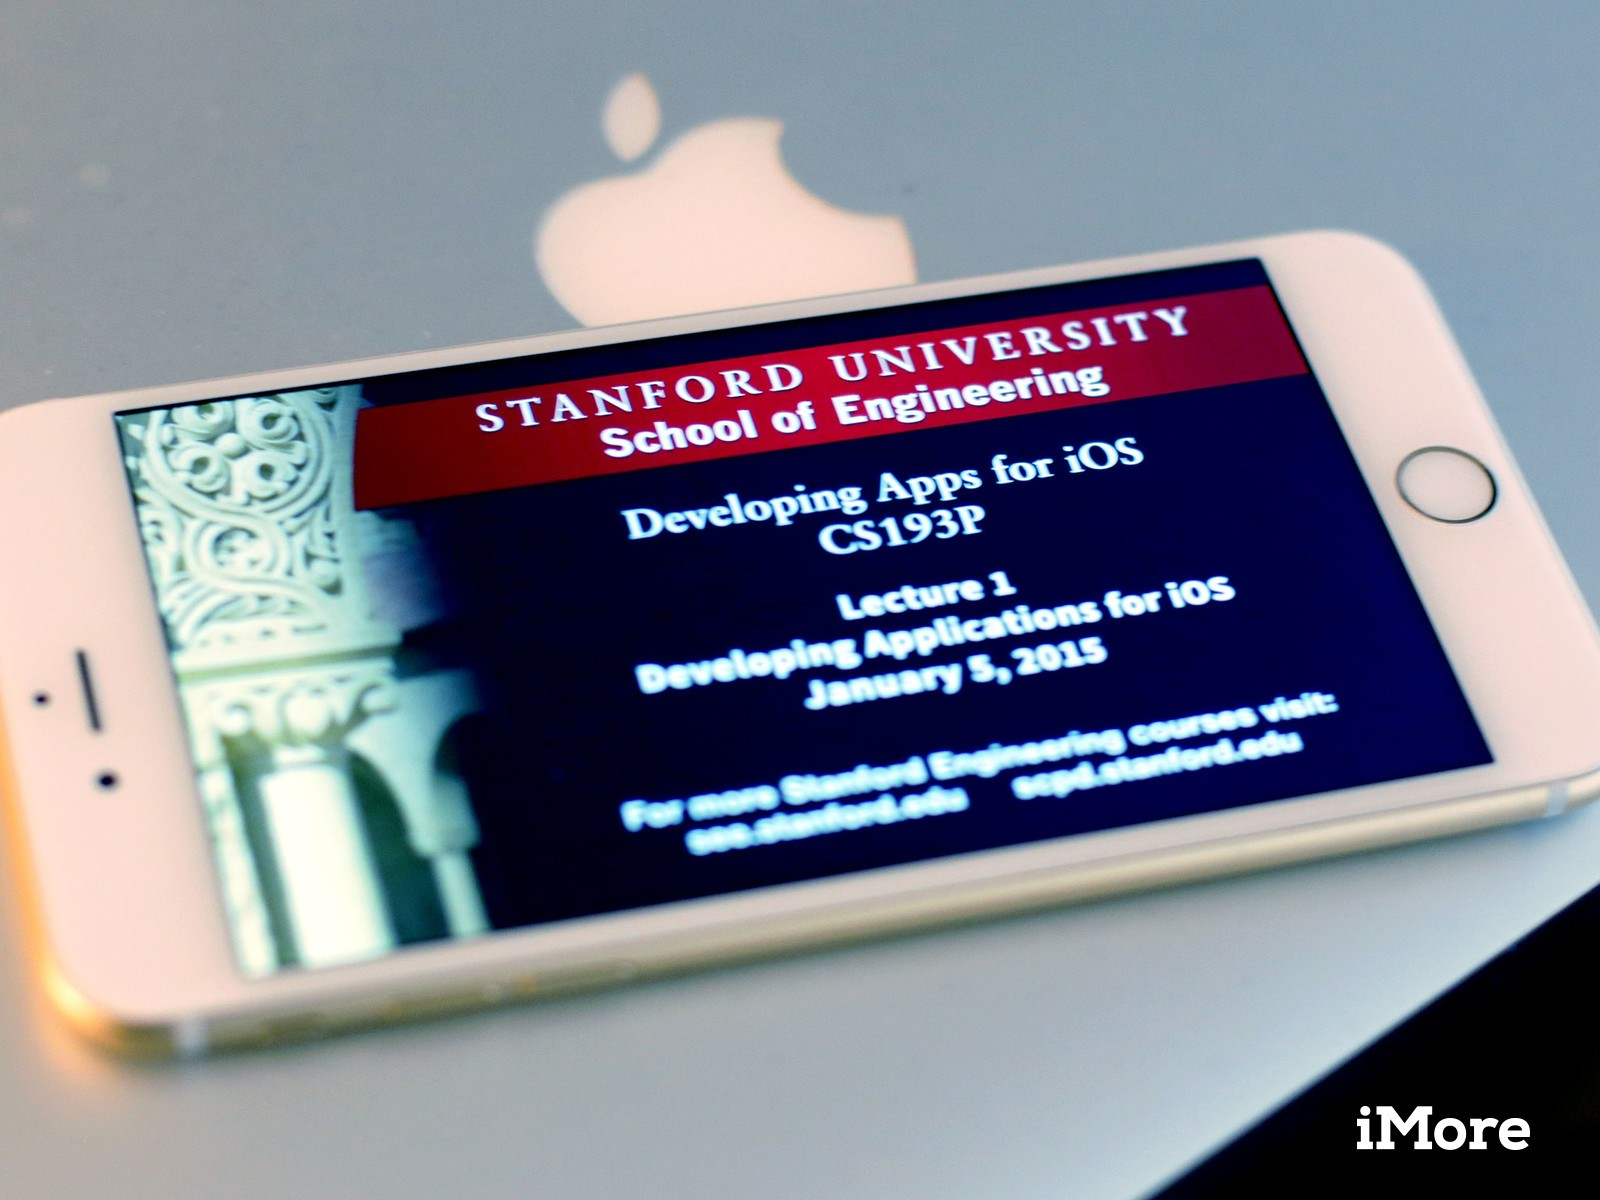 Developing iOS 8 Apps with Swift course from Stanford now live on iTunes U